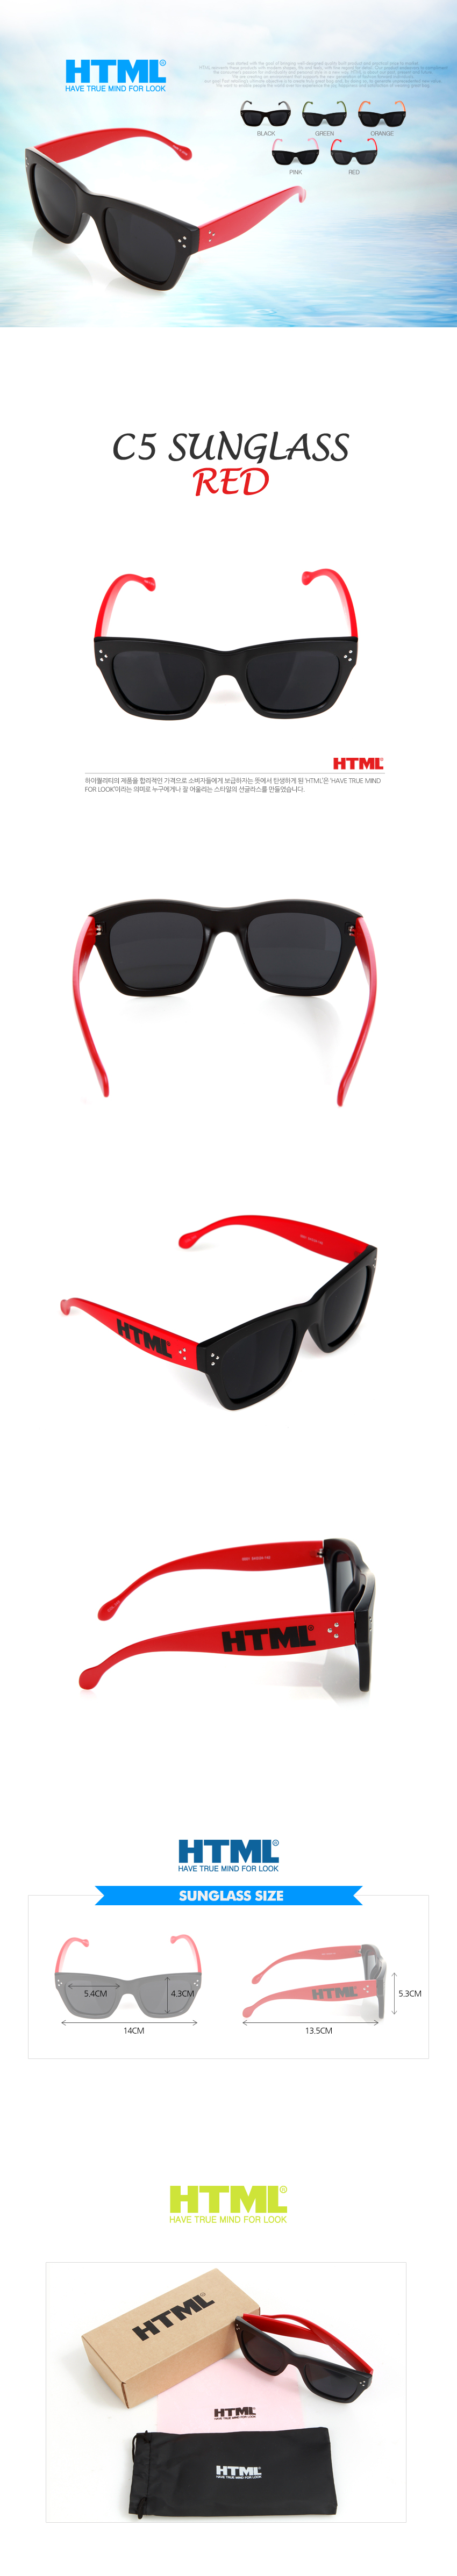 [에이치티엠엘] HTML - C5 sunglass (Red)